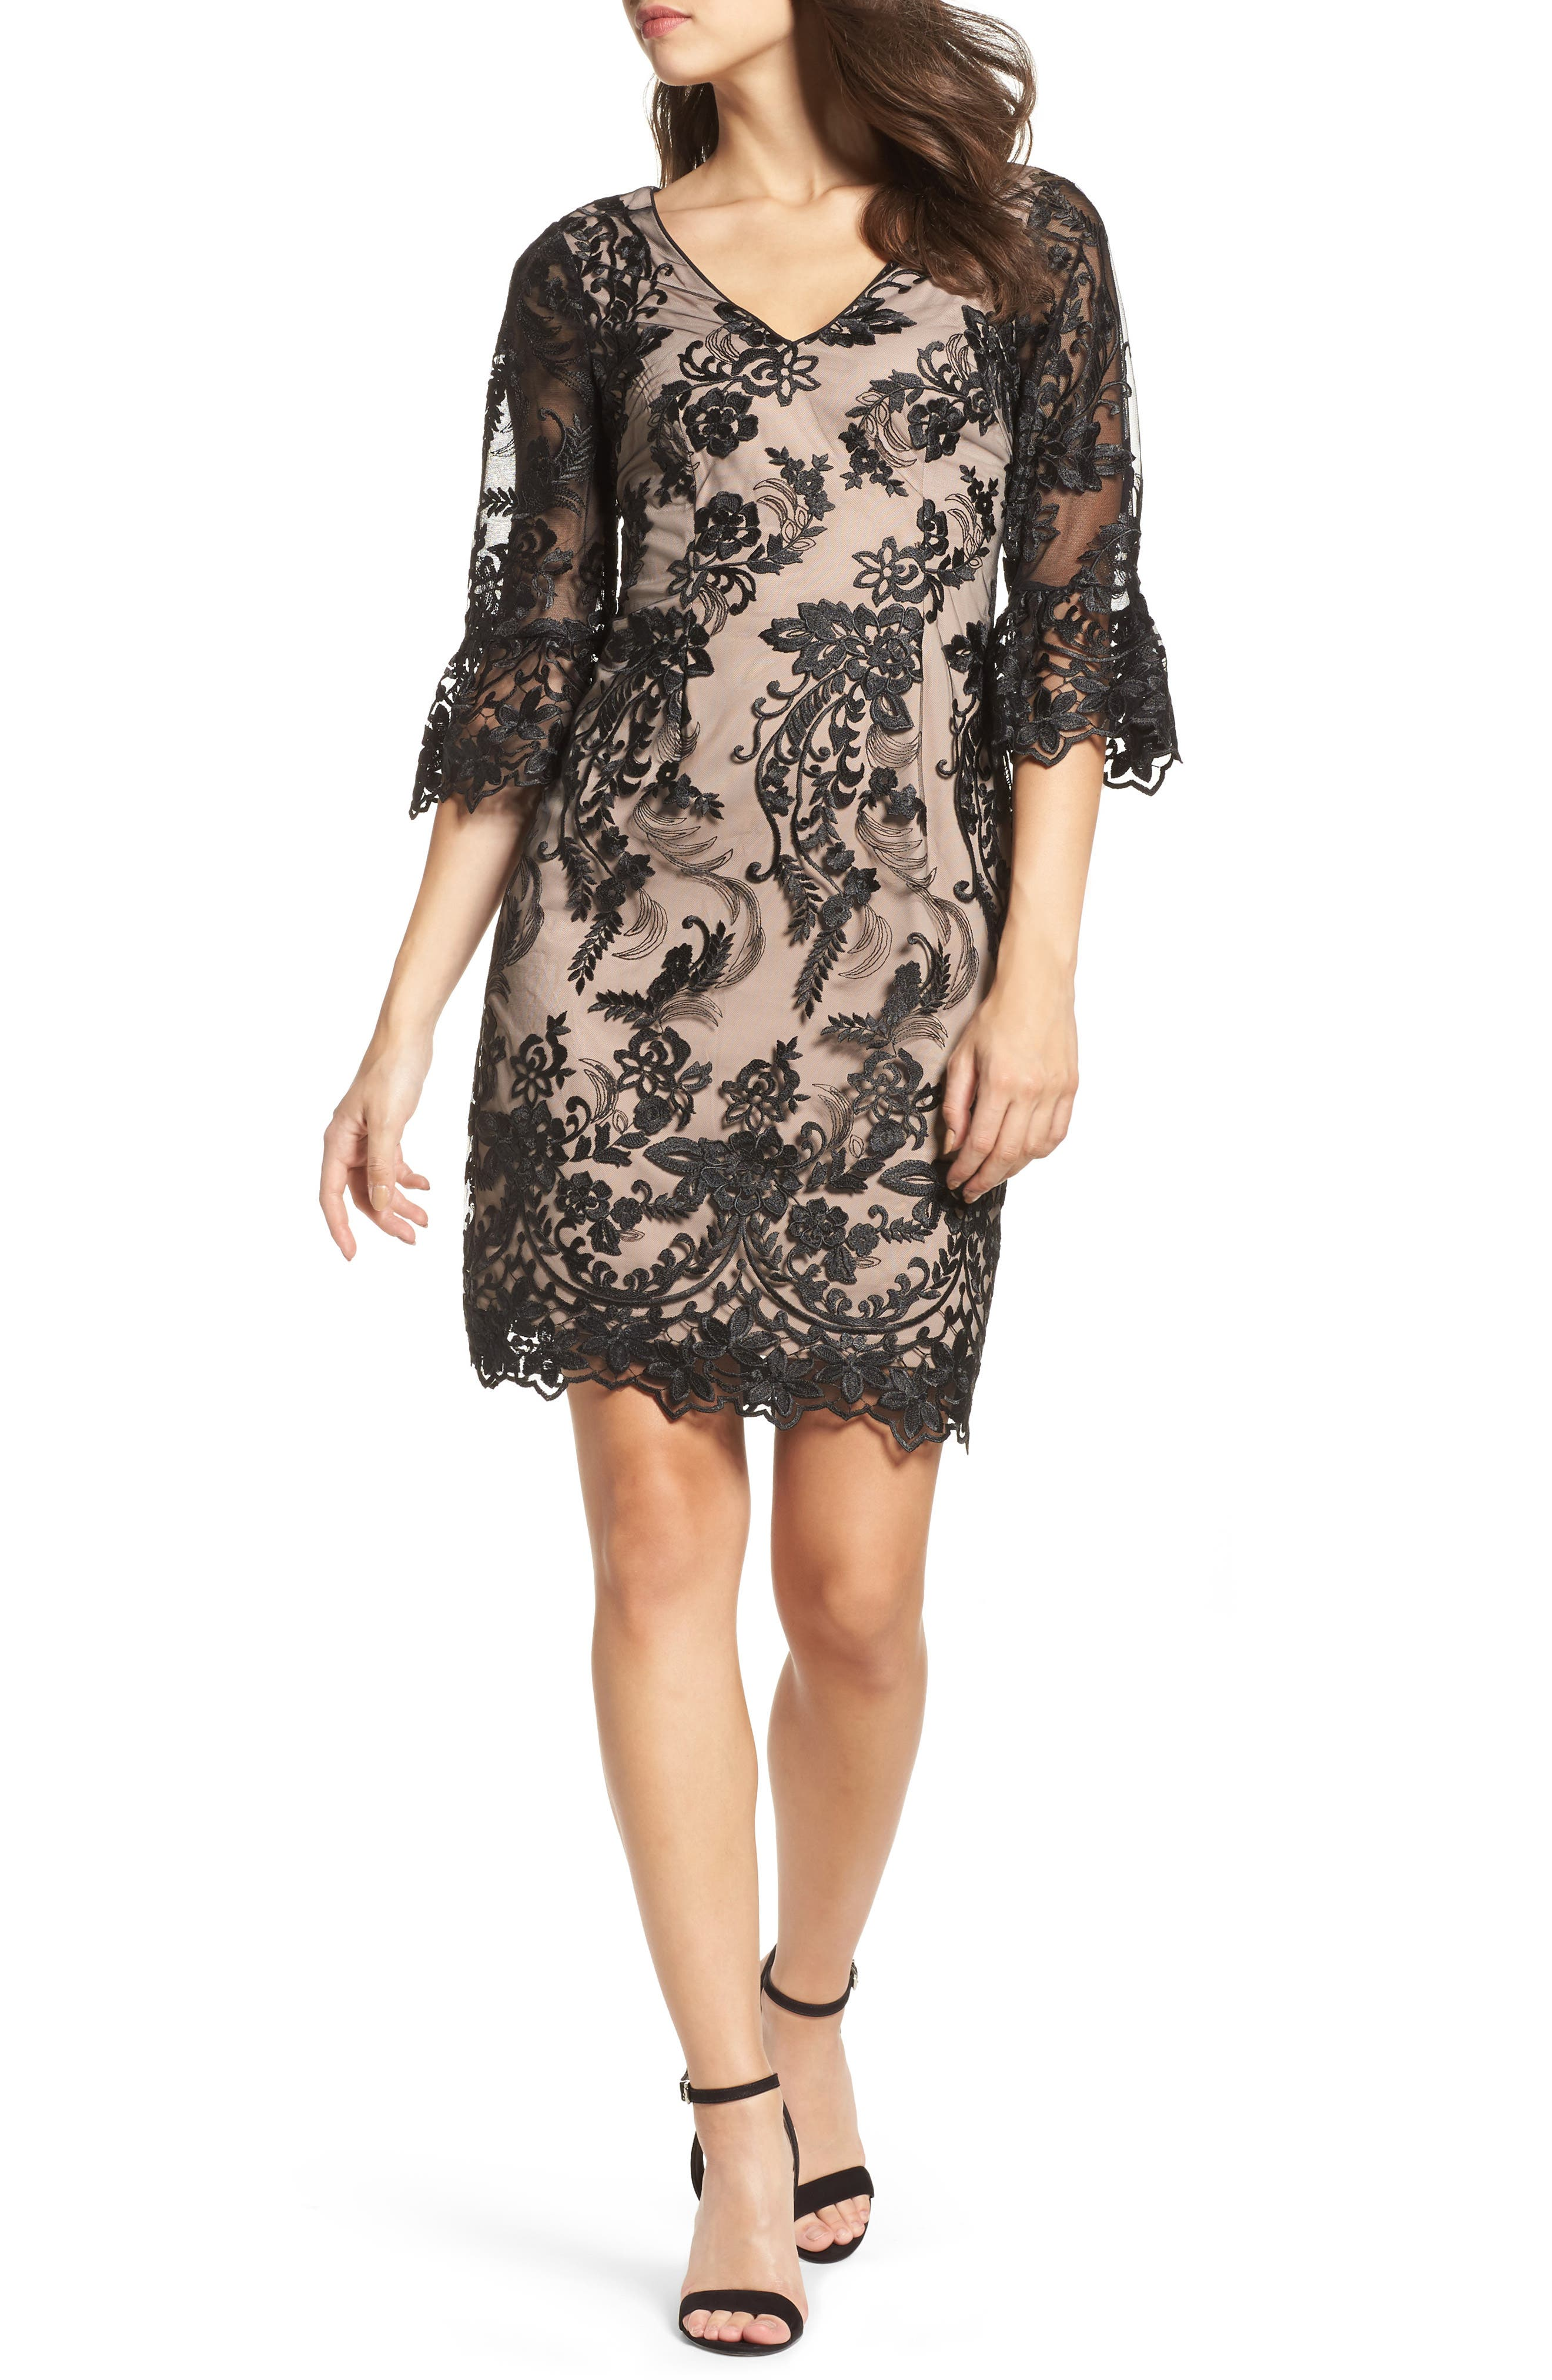 Main Image - Adrianna Papell Eillen Embroidered Lace Dress